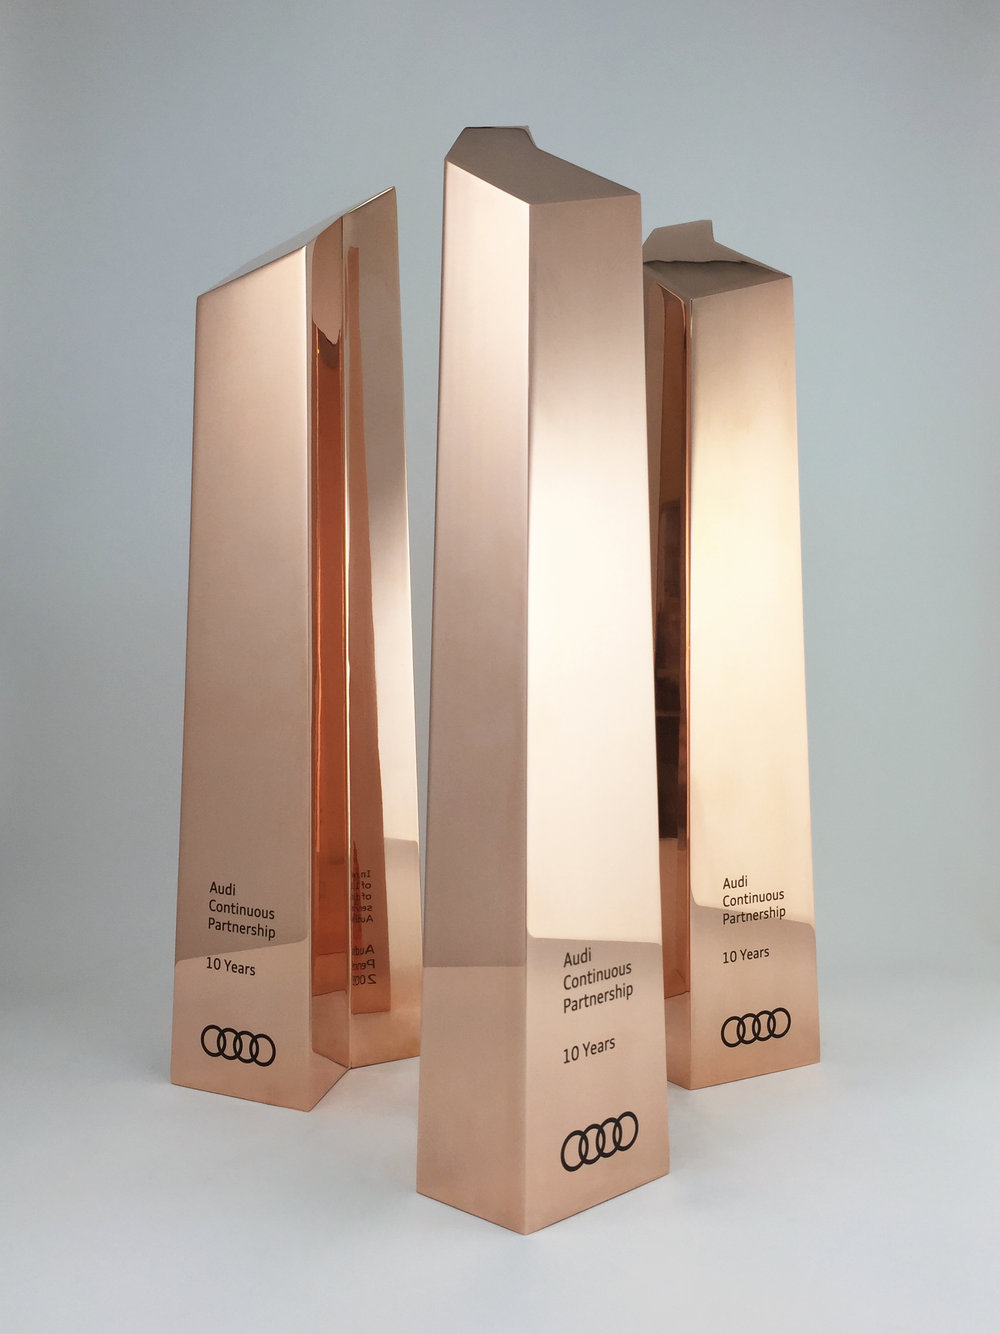 audi-metal-art-sculpture-award-trophy-06.jpg